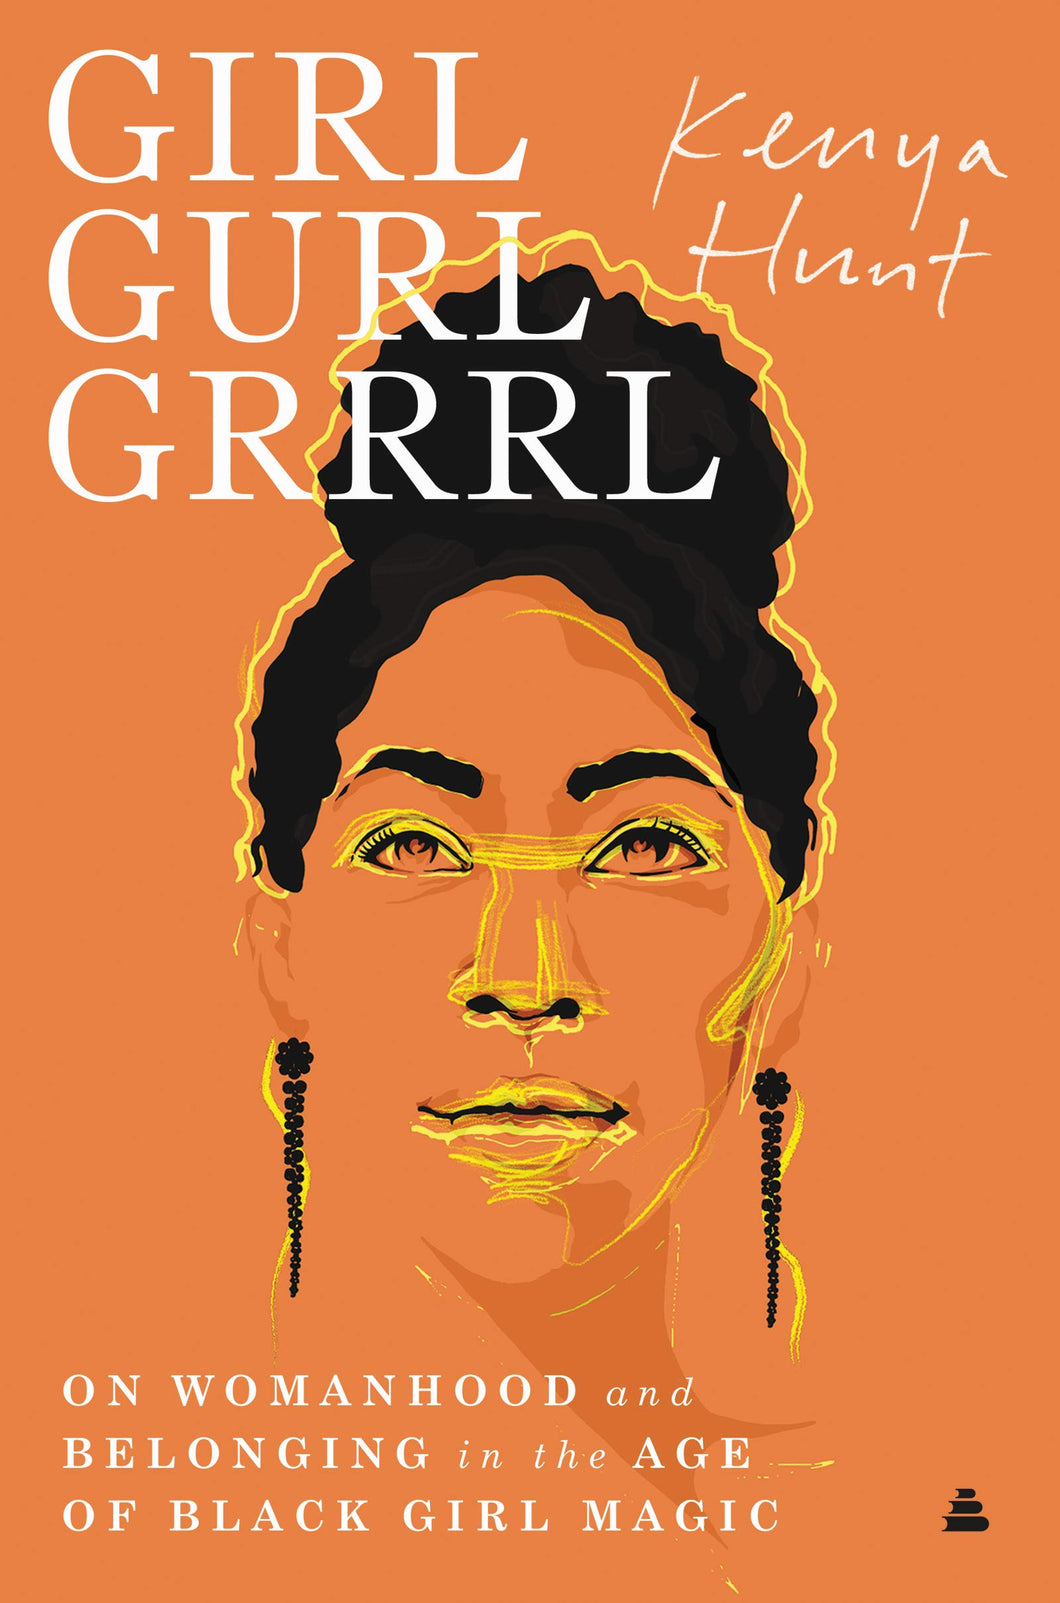 Girl Gurl Grrrl: On Womanhood and Belonging in the Age of Black Girl Magic by Kenya Hunt (Pre-Order, December 8)